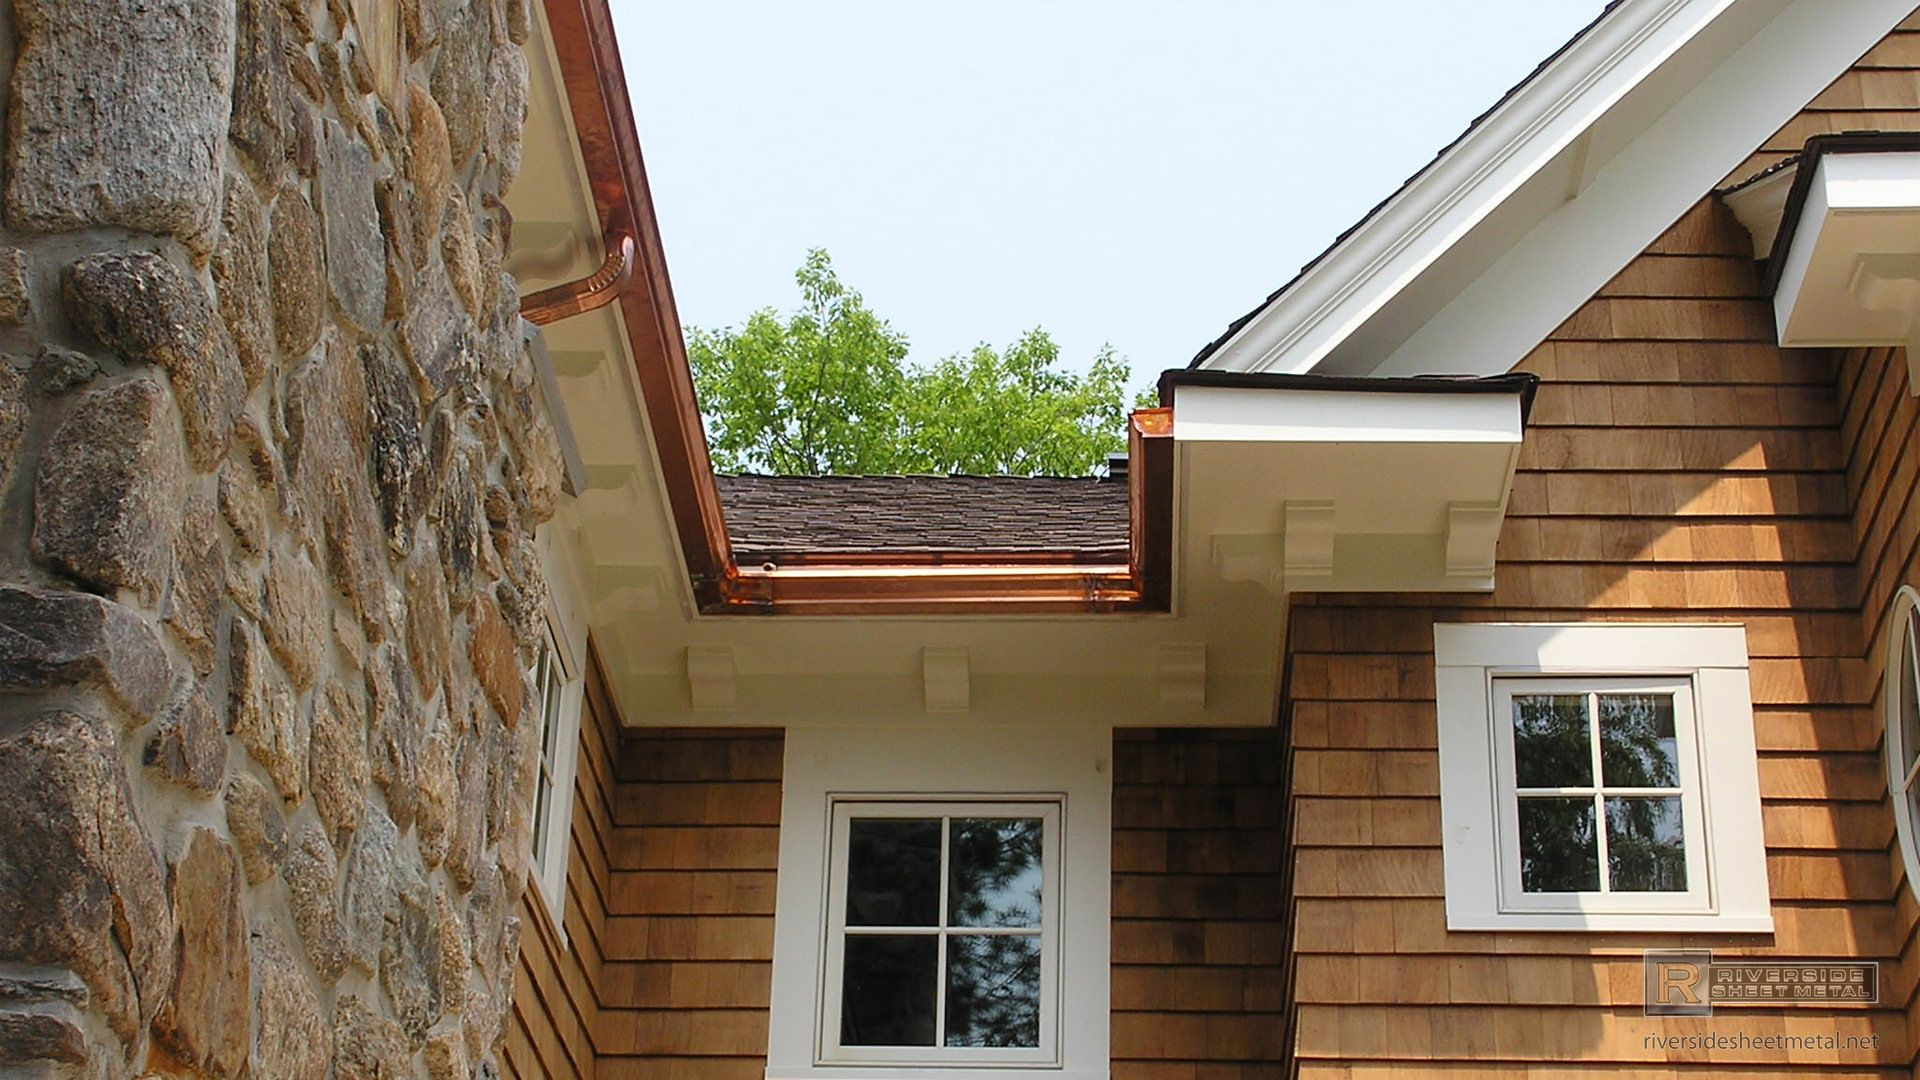 K Style Copper Gutter And Downspouts Installed Riverside Ma Gutters Diy Gutters Downspout